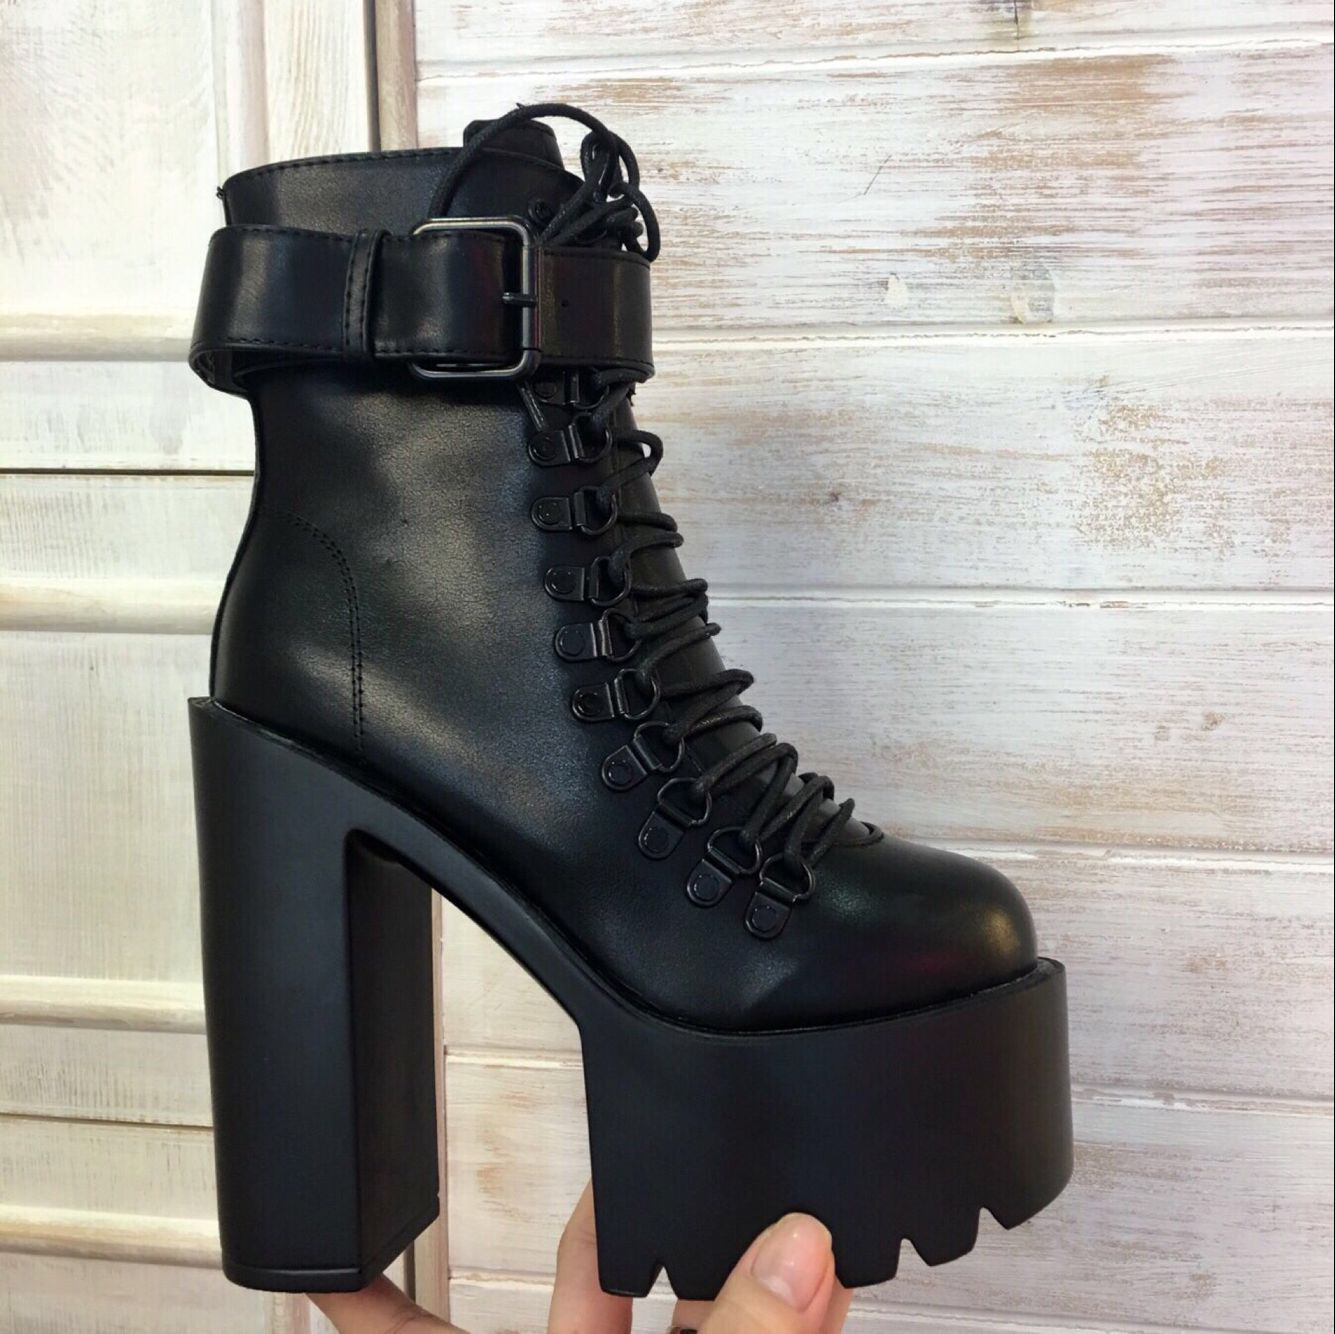 Black Square Heels Platform Boots Ankle Boots Female Lace Up Women Shoes  Fashion from Eoooh❣❣